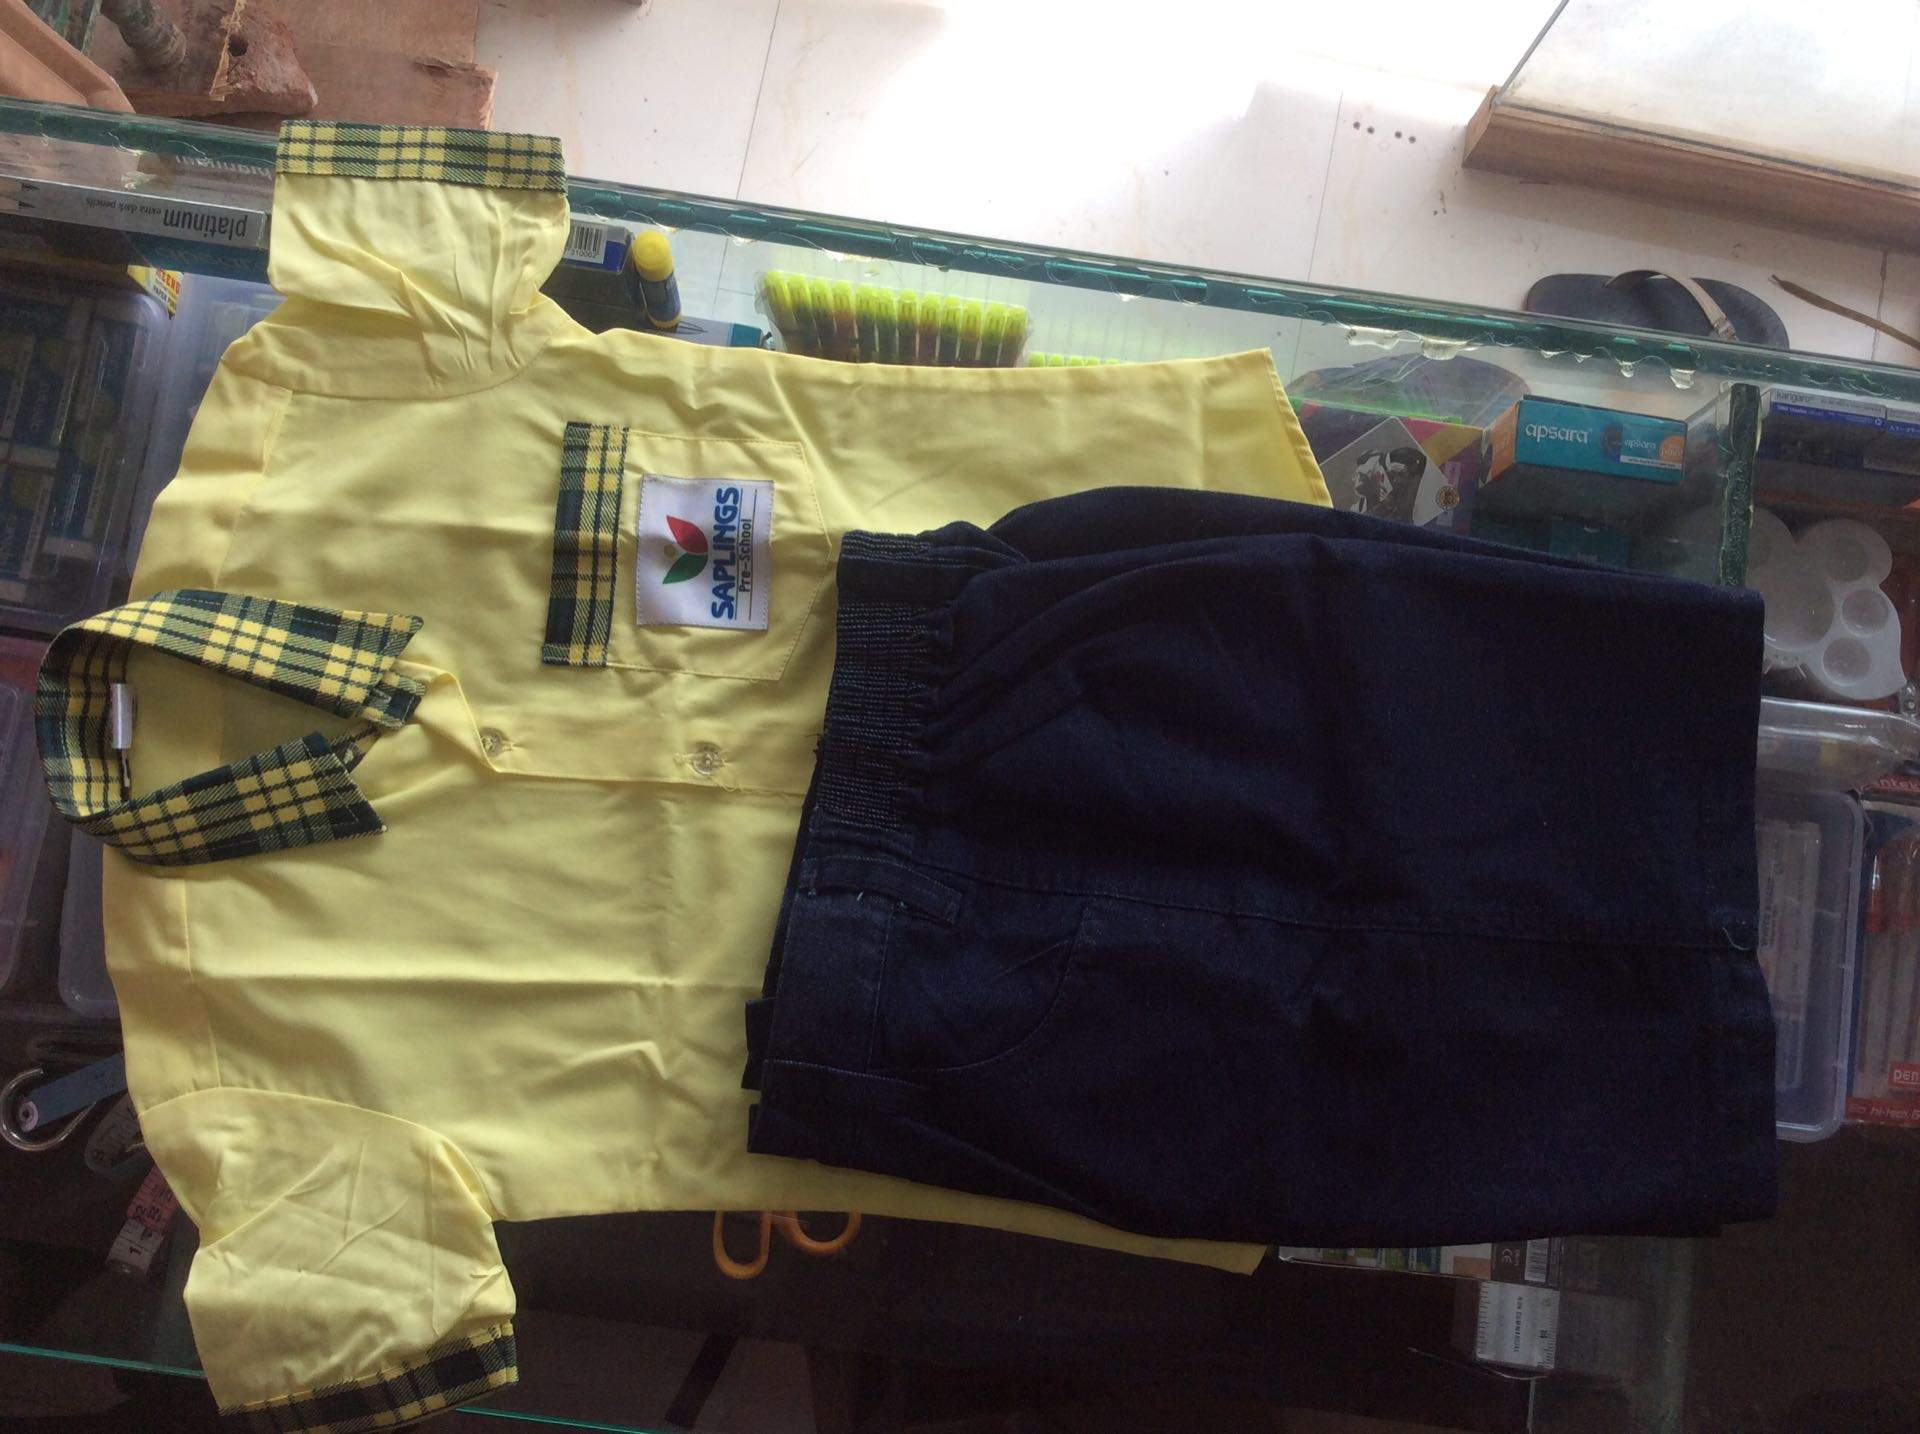 Top School Uniform Manufacturers in Parbhani - Justdial